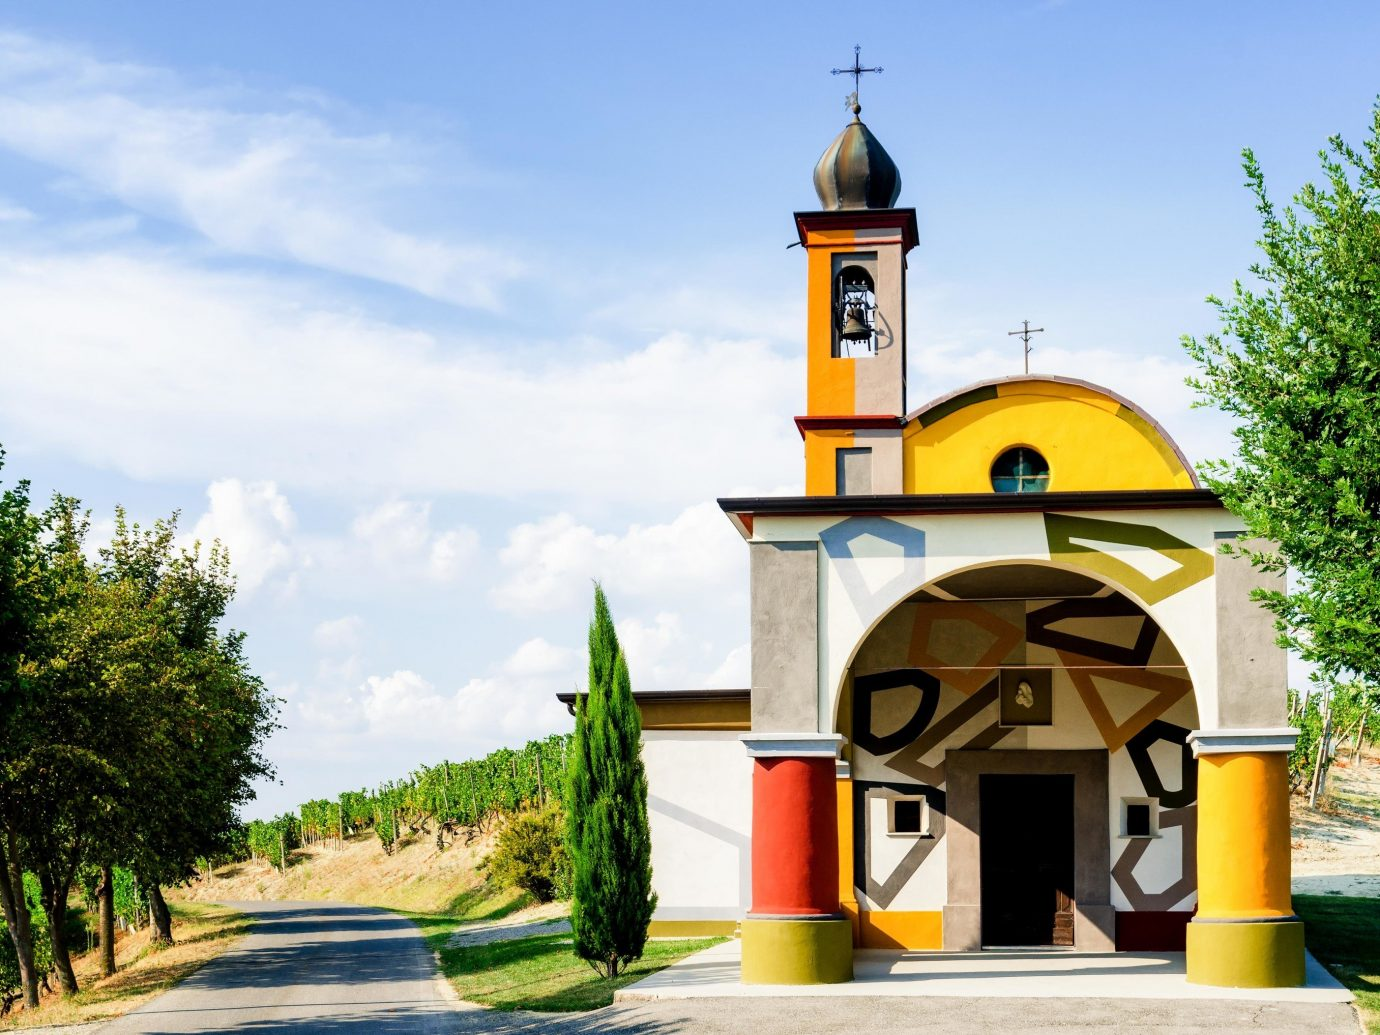 Food + Drink Hotels Italy Luxury Travel Trip Ideas sky outdoor tree place of worship chapel building Church yellow bell tower steeple hacienda facade spanish missions in california